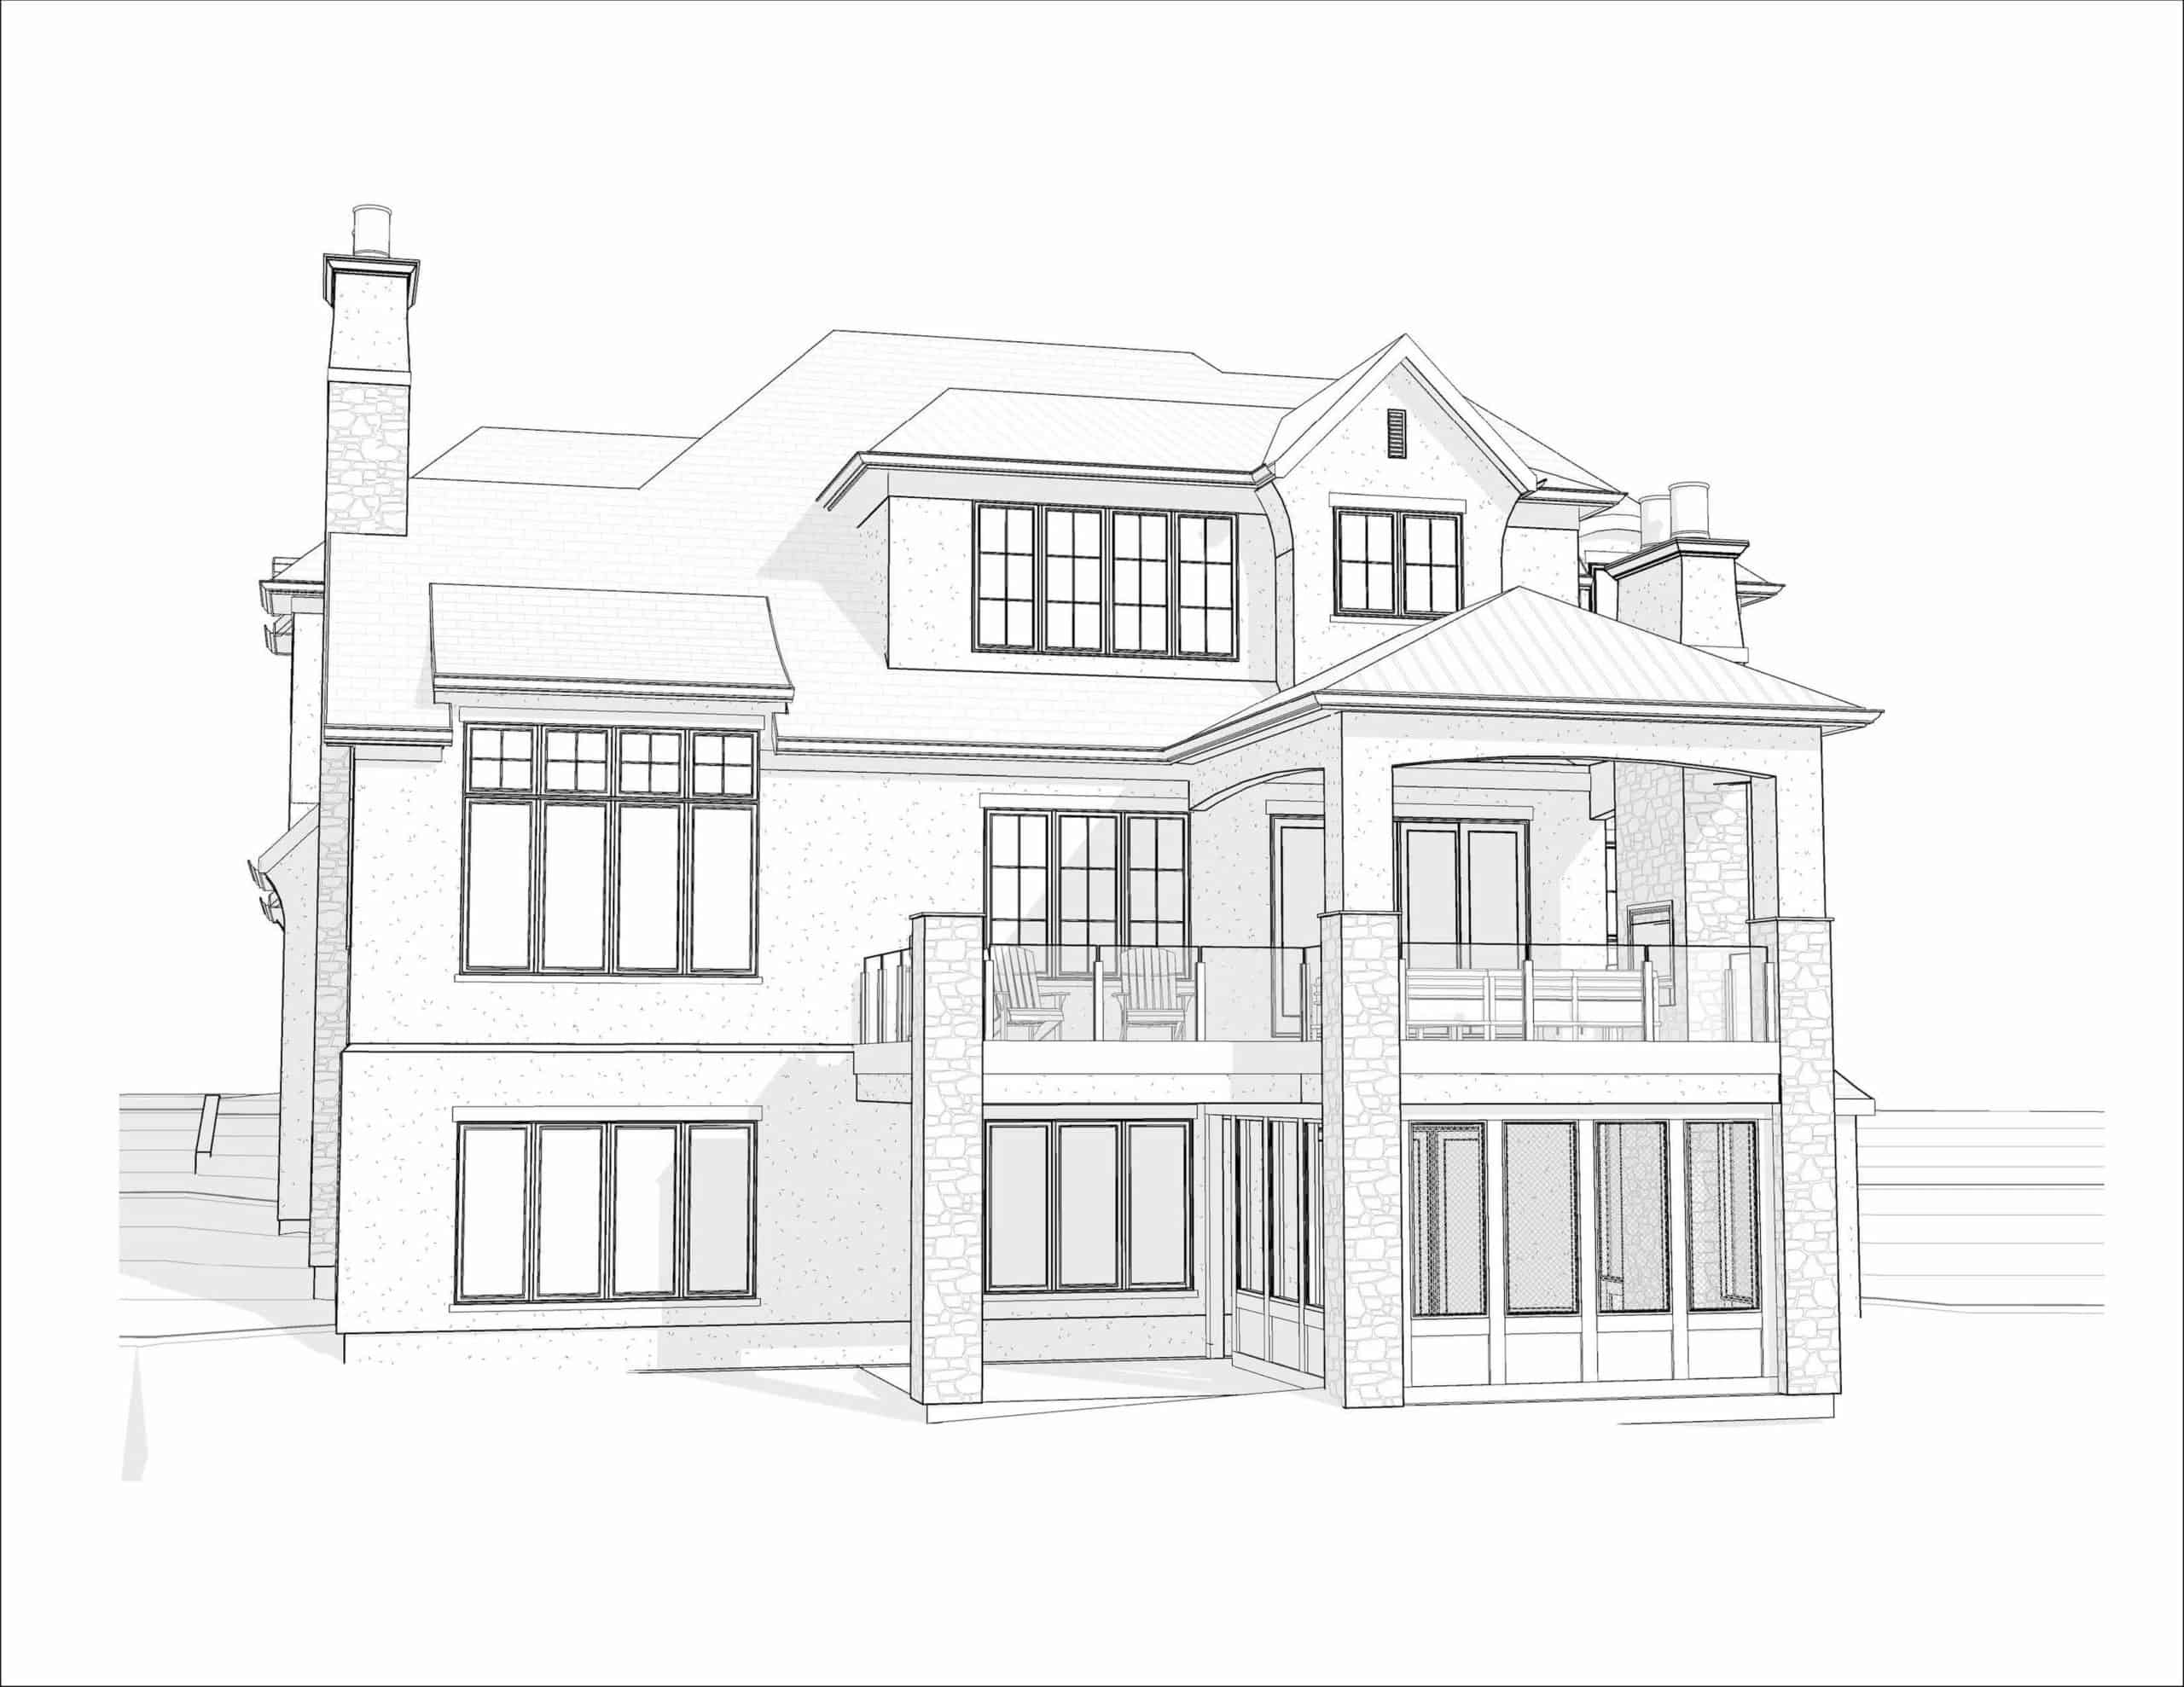 Edelweiss English Manor residential dream home